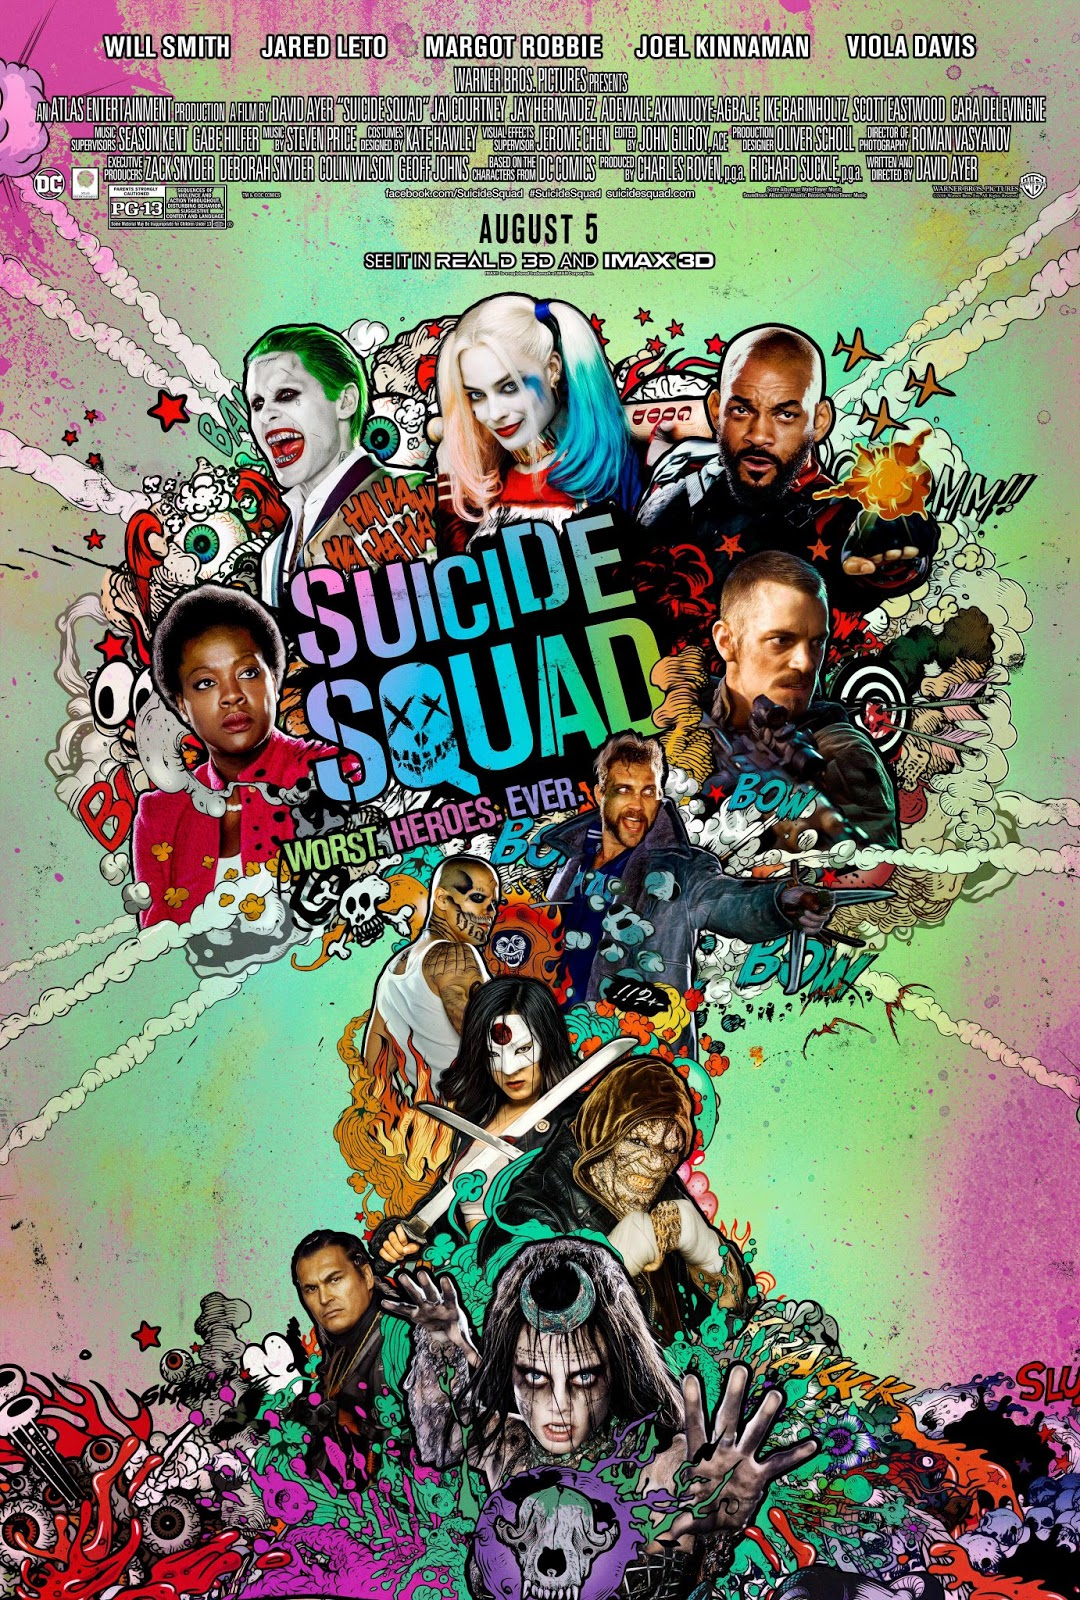 ece631254cd1b5 Margot Robbie for the Movie: Suicide Squad, 2016 | BlueisKewl